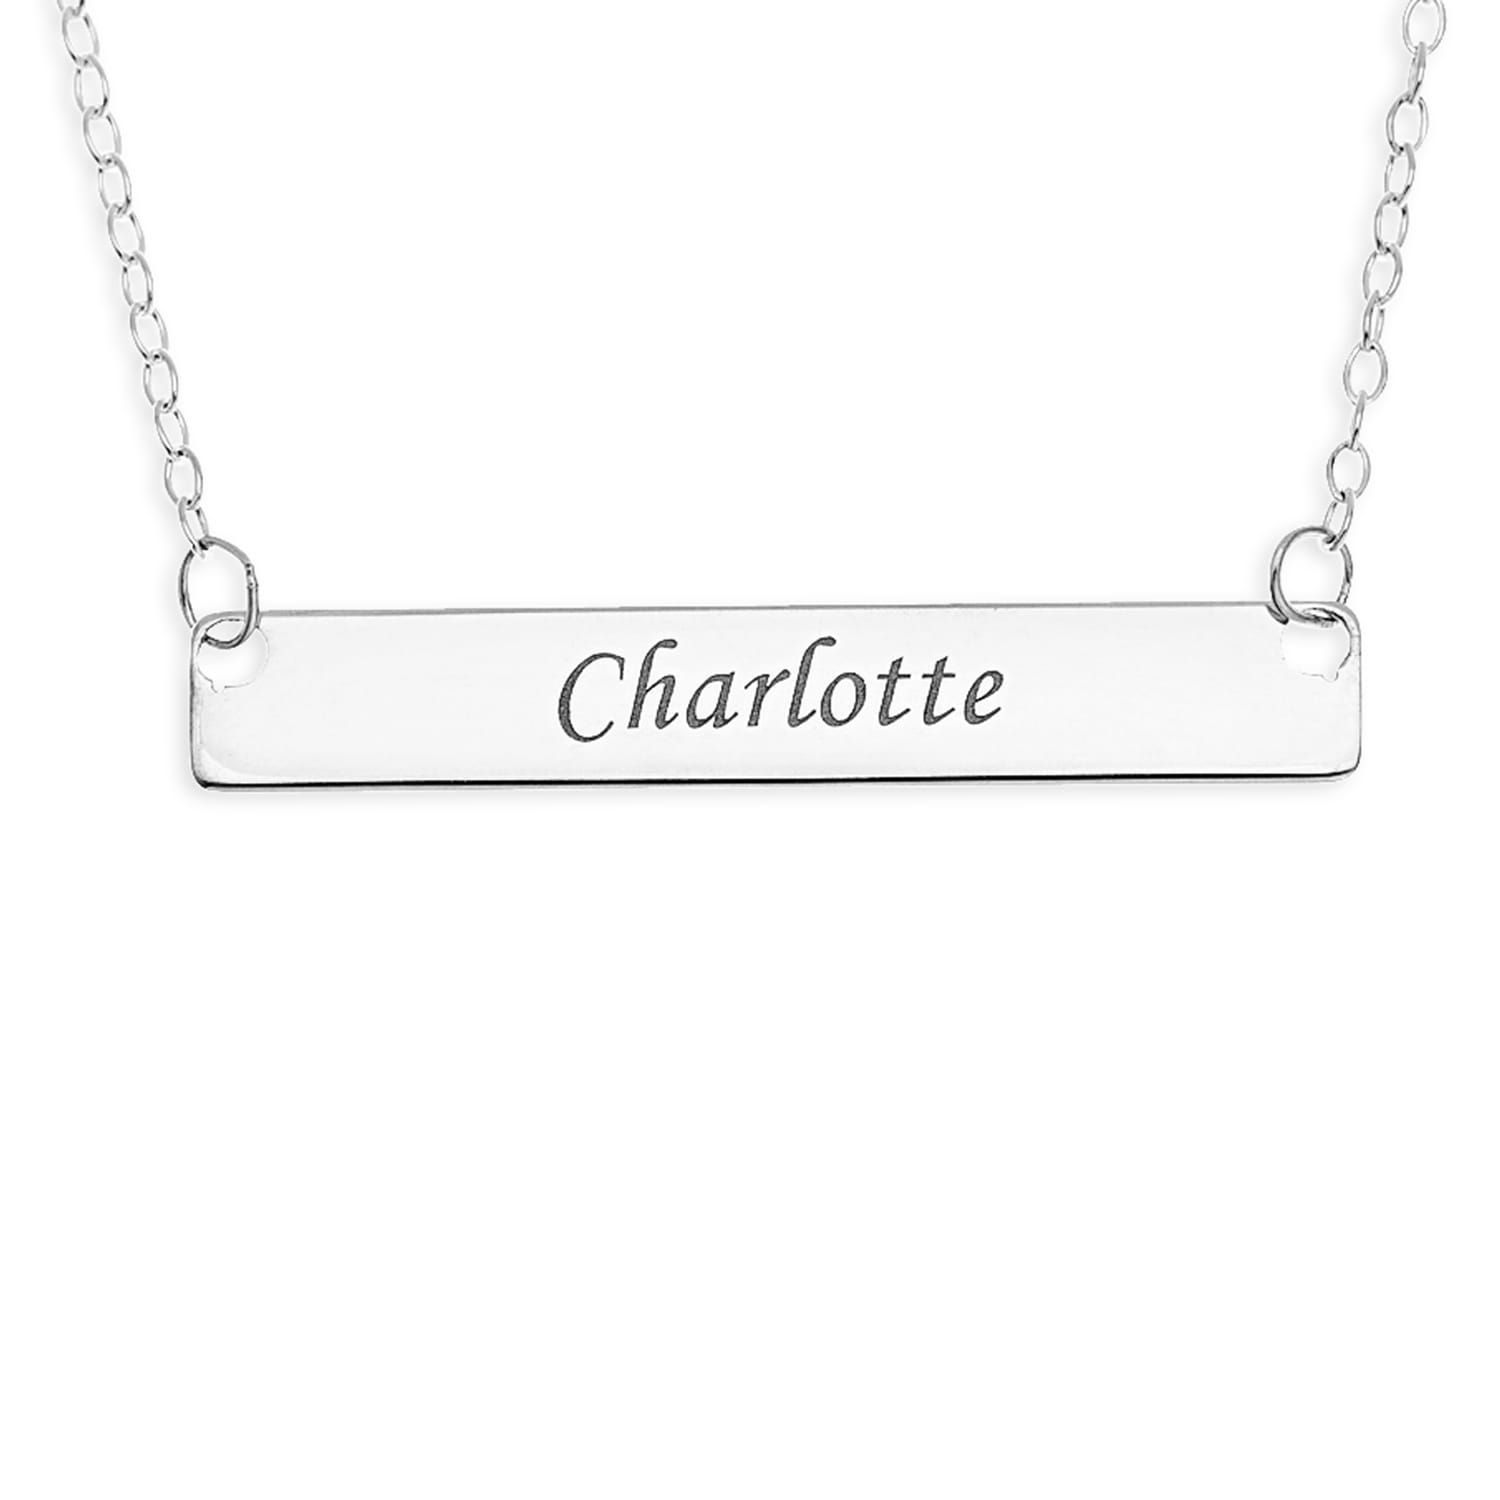 Personalised Gifts Sterling Silver Engraved Name Necklace Bar Pendant